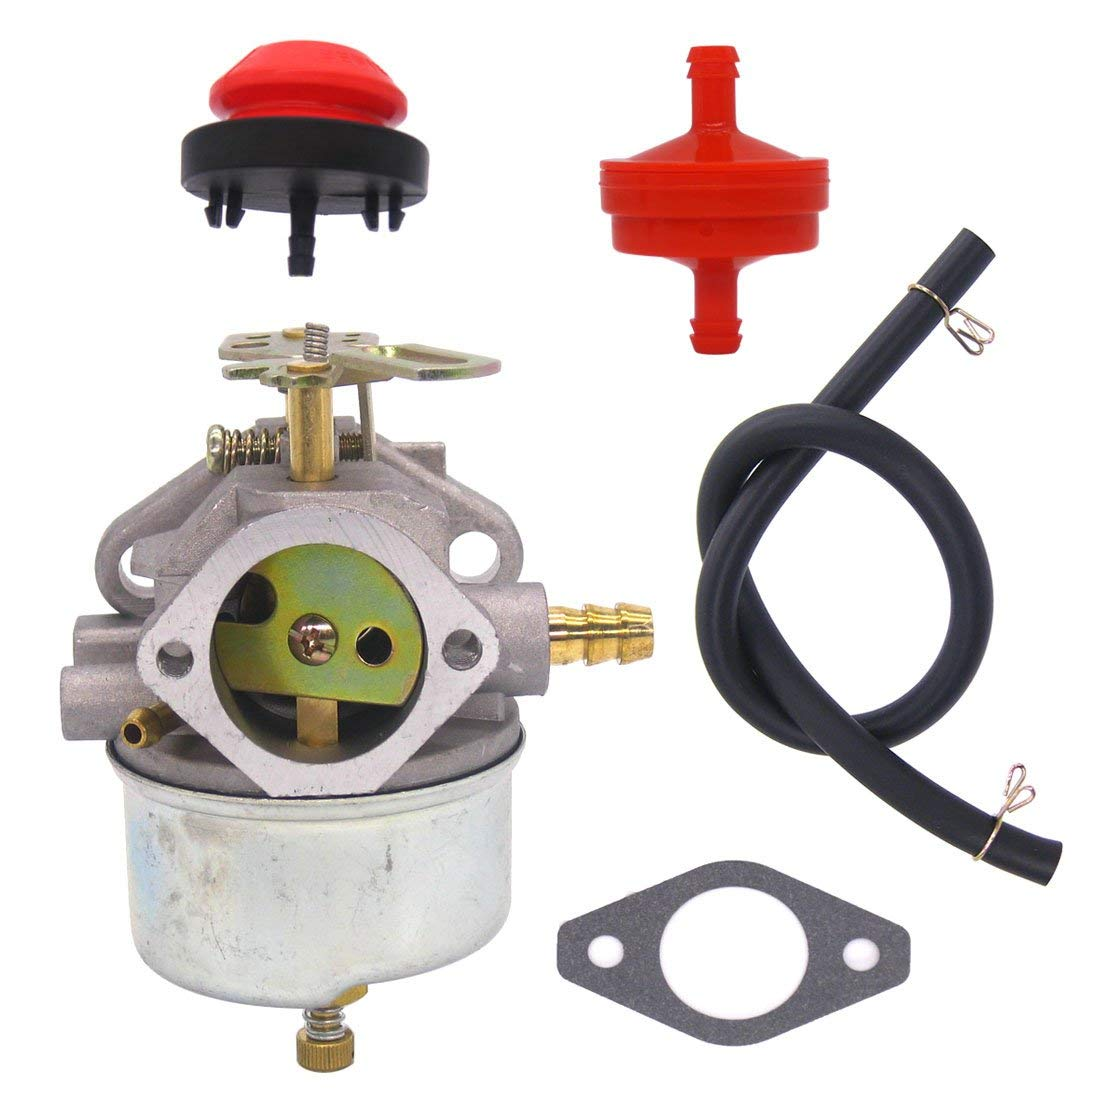 Atoparts New Carburetor with Fuel Filter Primer Bulb for Tecumseh 632370A 632370 632110 fits HM100 HMSK100 HMSK90 Snow Blower